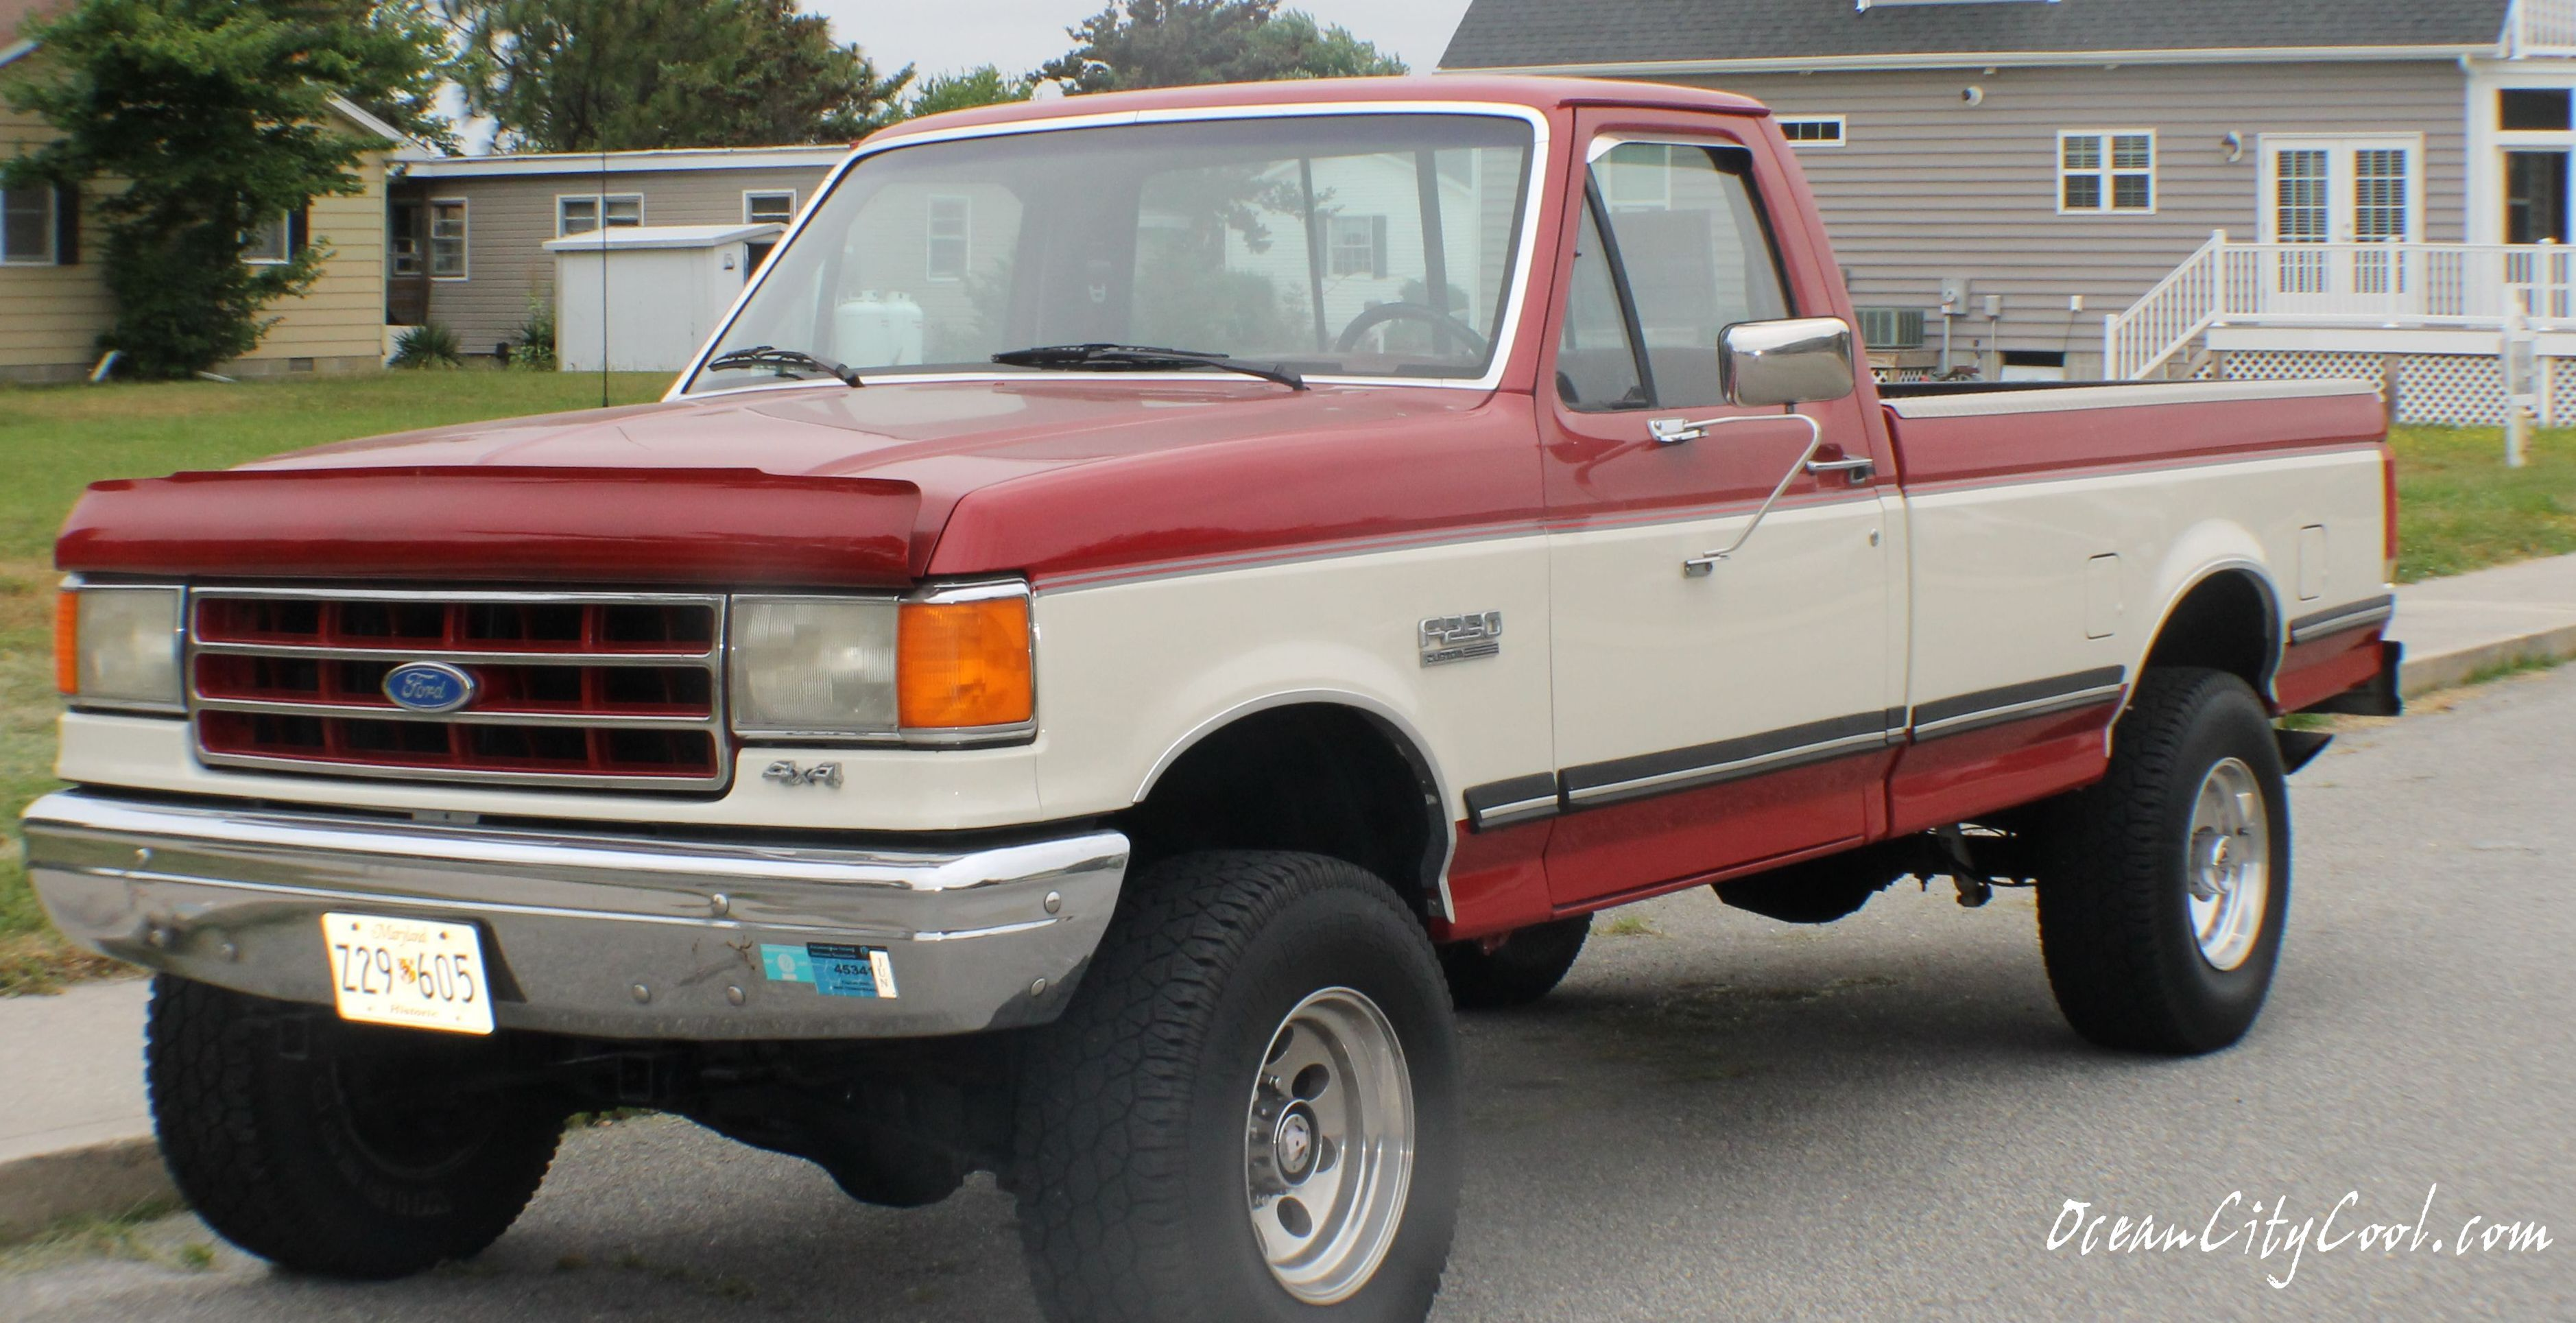 Historic 1988 Ford F250 4x4 Click Pix To Learn More Ocmd Ocauto Ford F250 Ford 4x4 F250